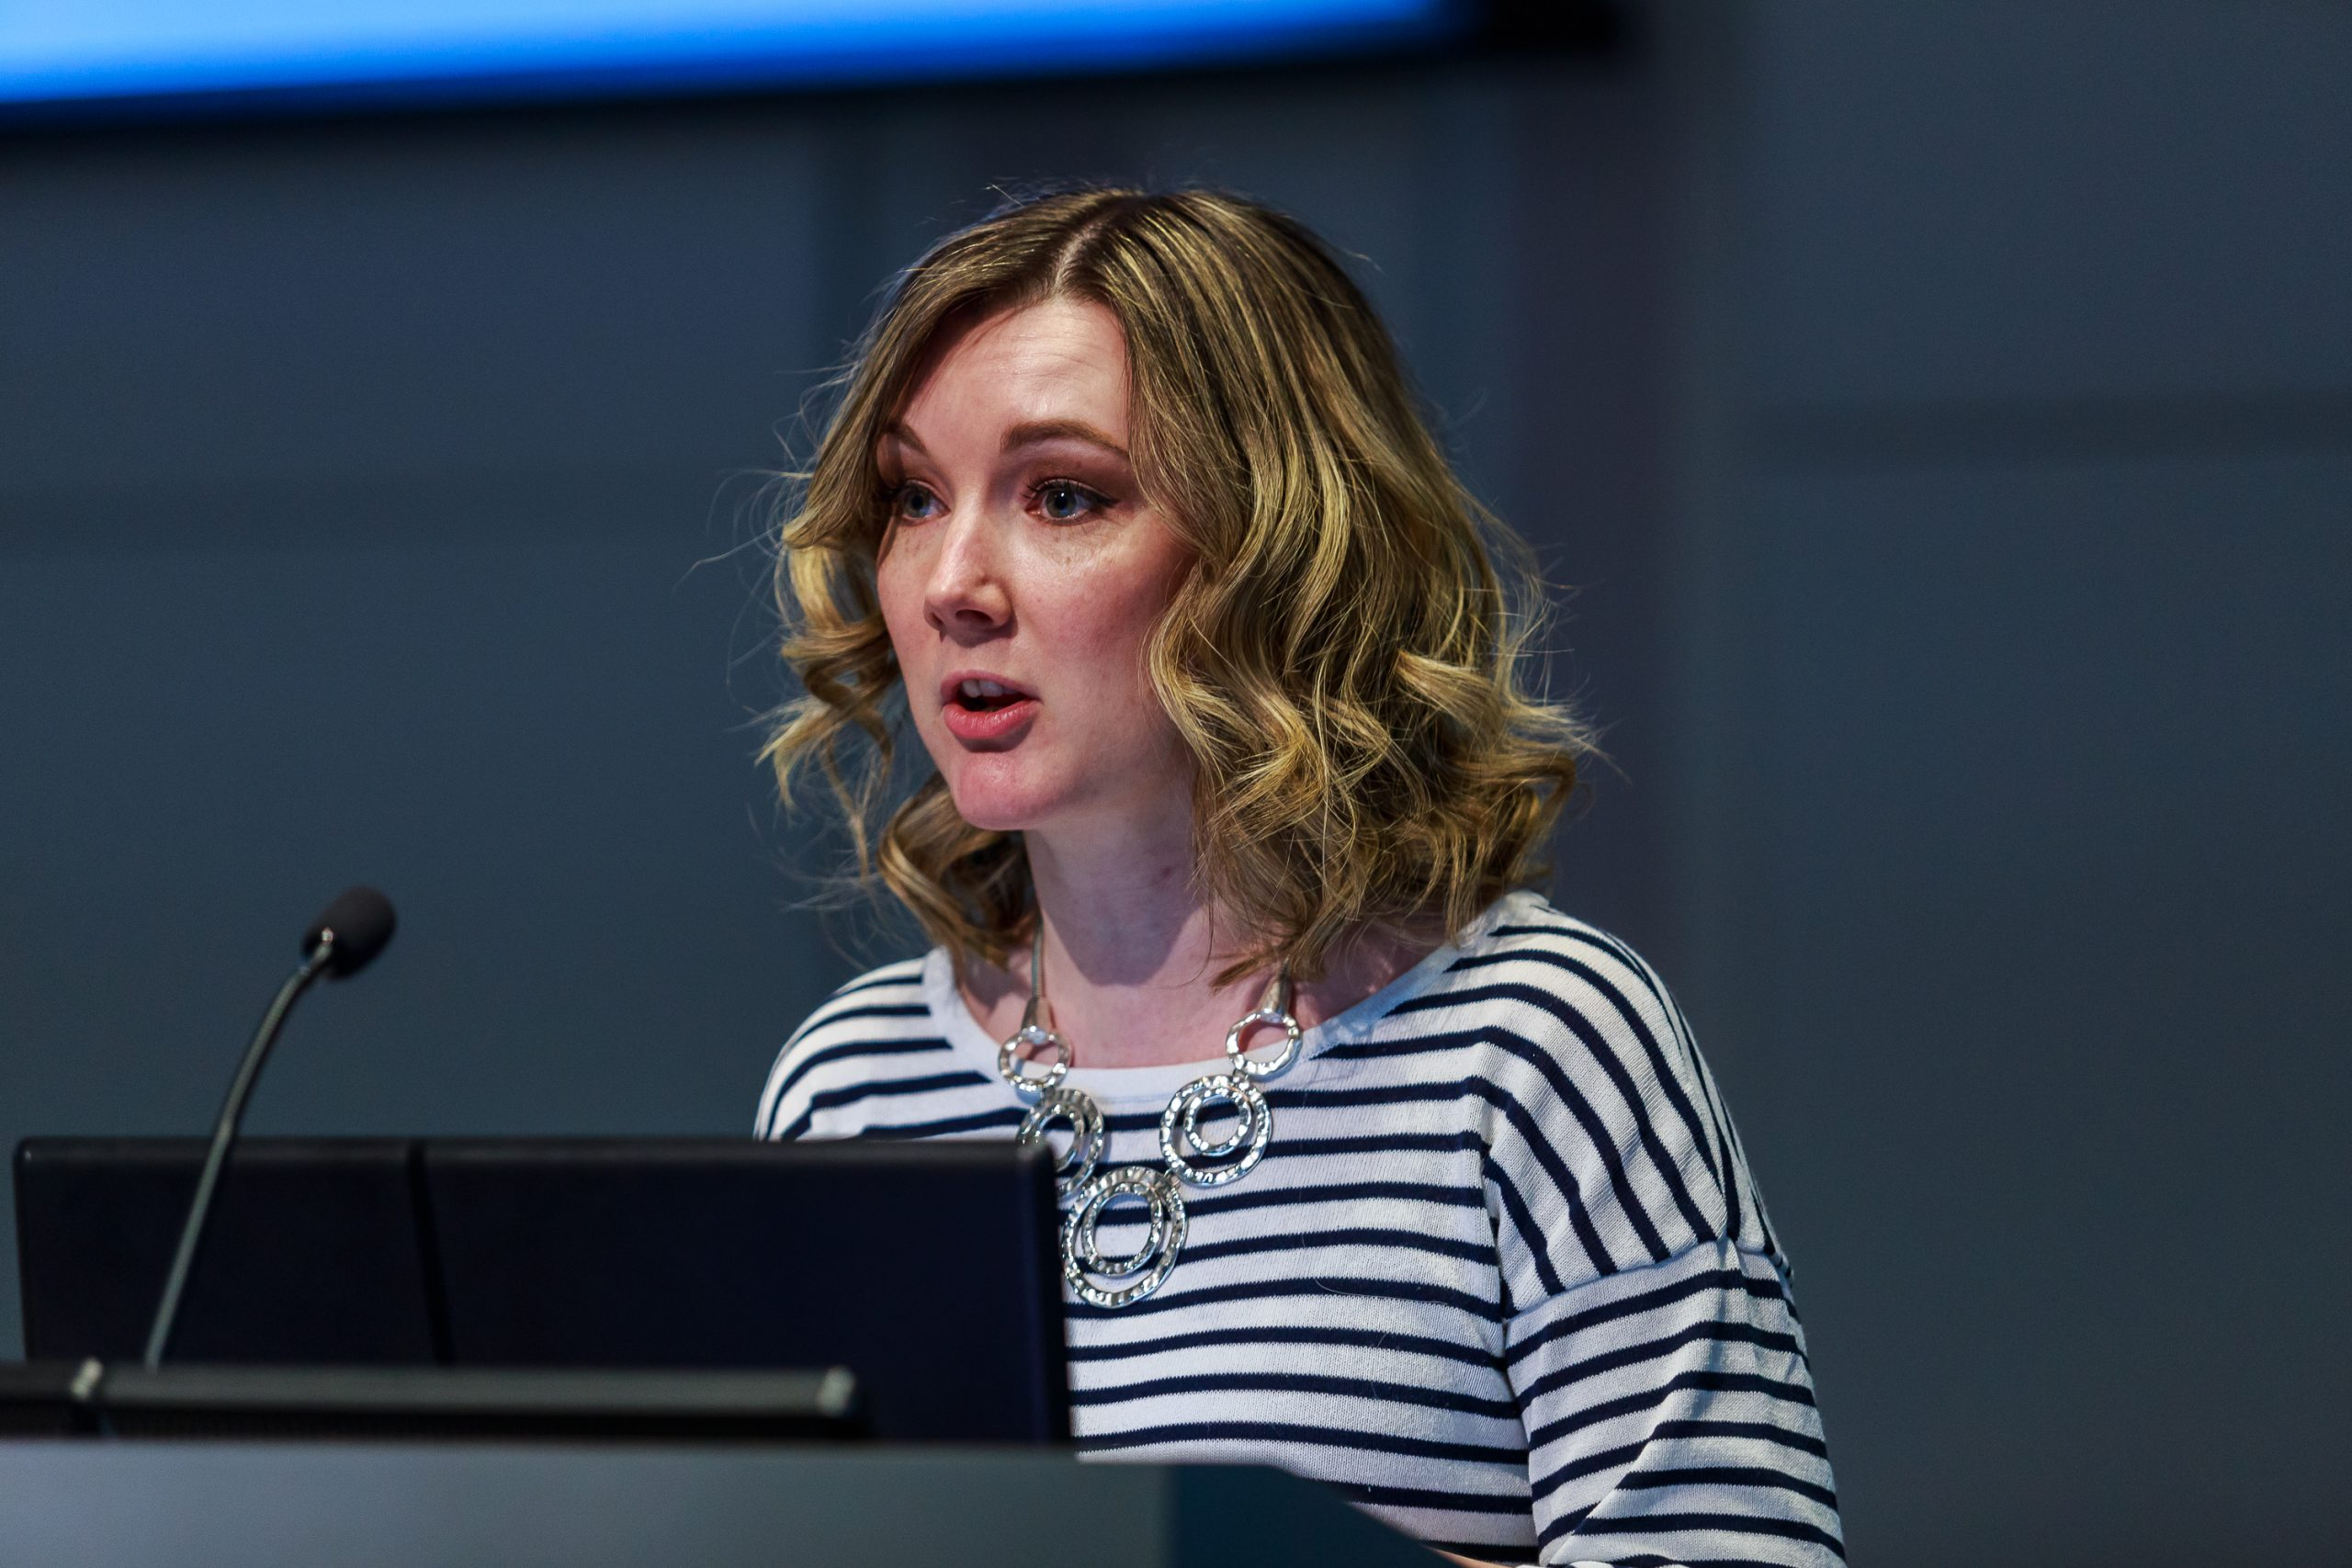 Lucy Ruck speaking at Business Disability Forum's conference in 2017